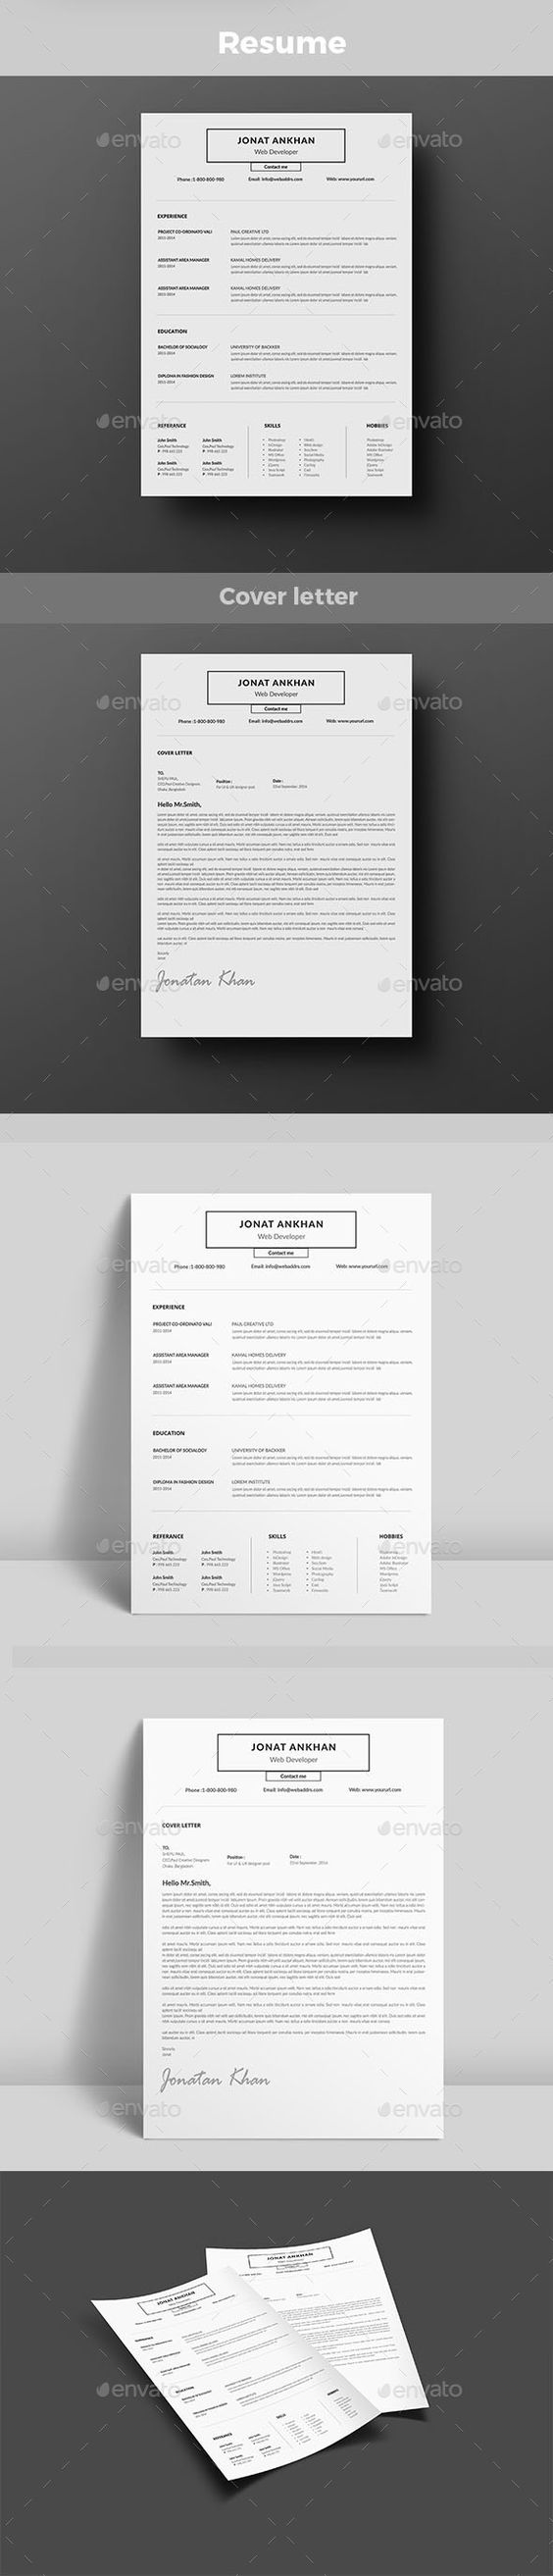 Resume Pinterest – Corporate Word Templates